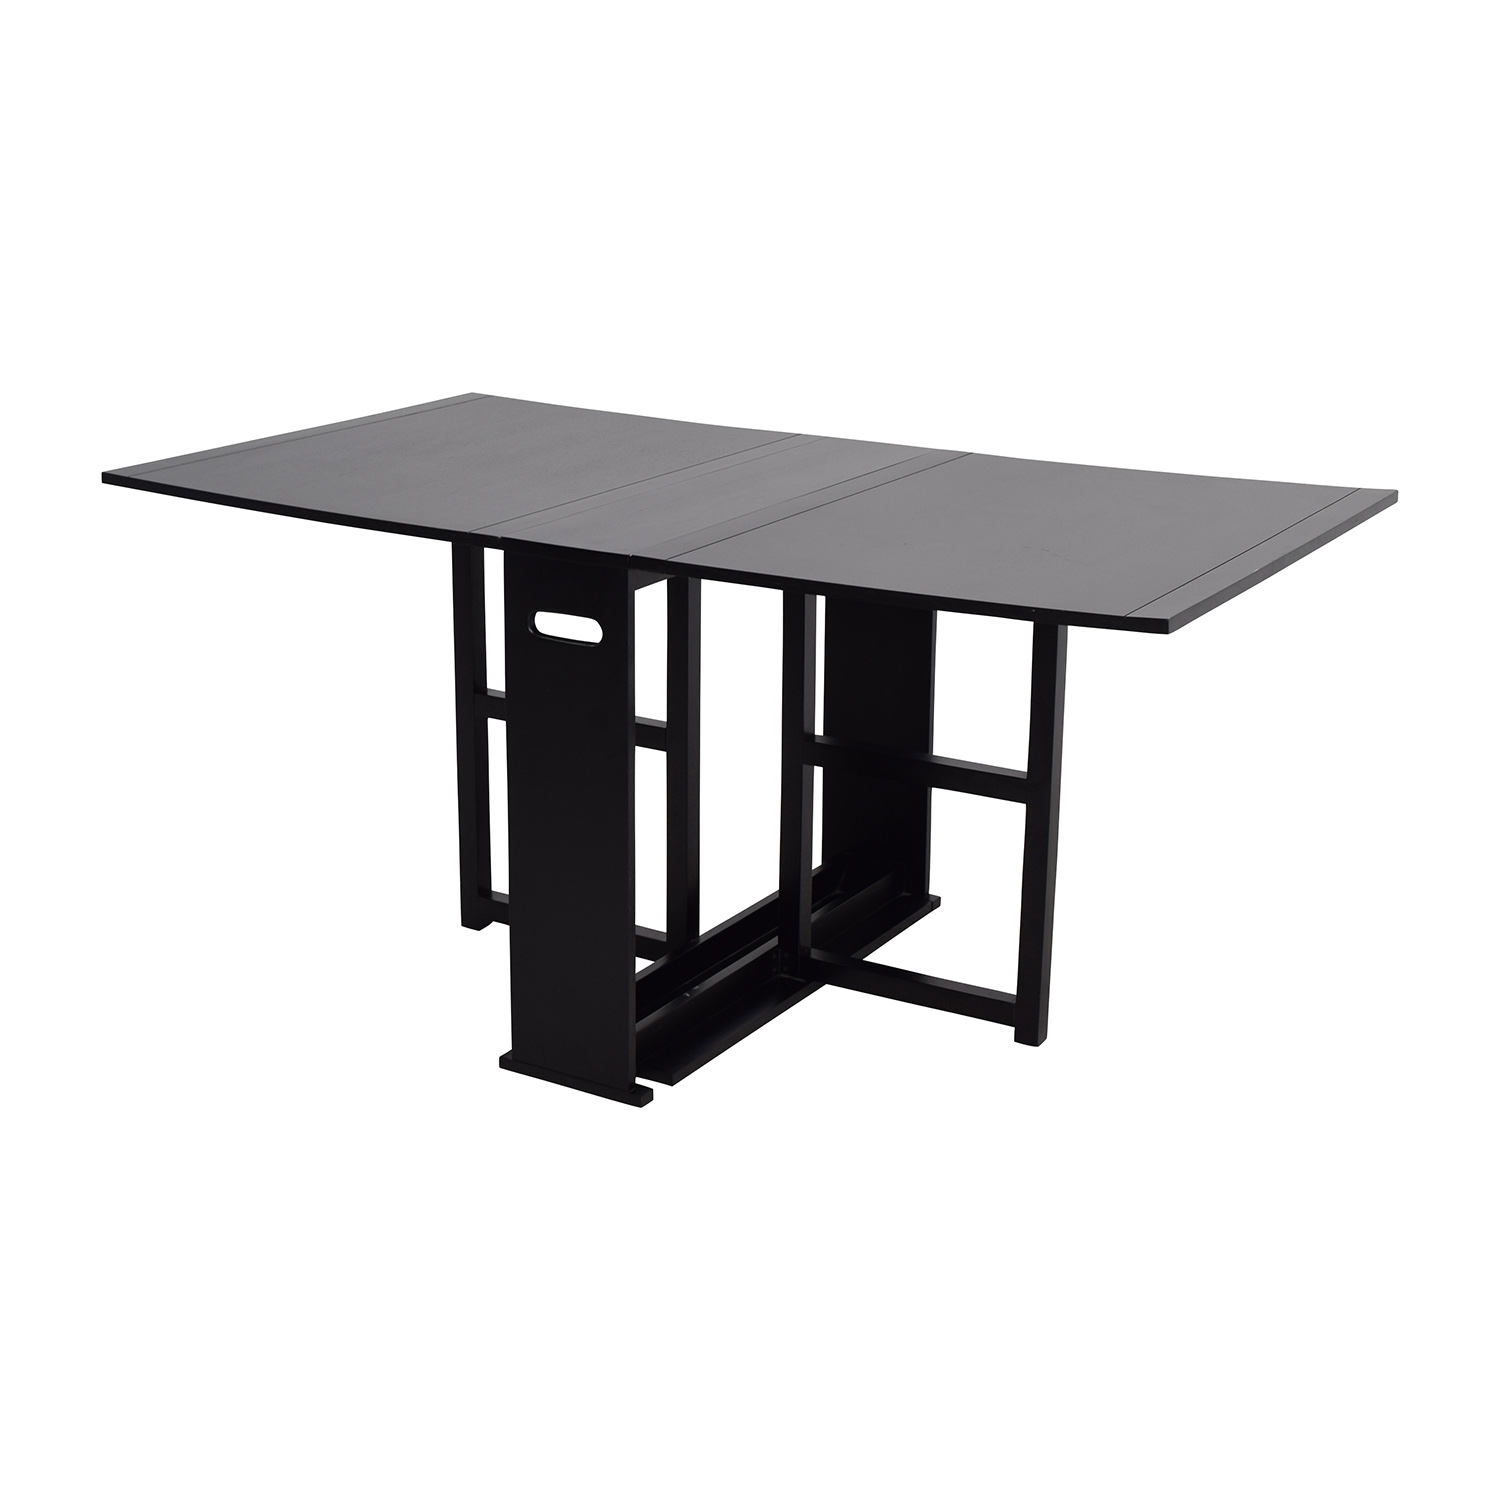 Cheap Folding Dining Table And Chairs Cheap Gateleg Table Fabulous Small Folding Kitchen Table